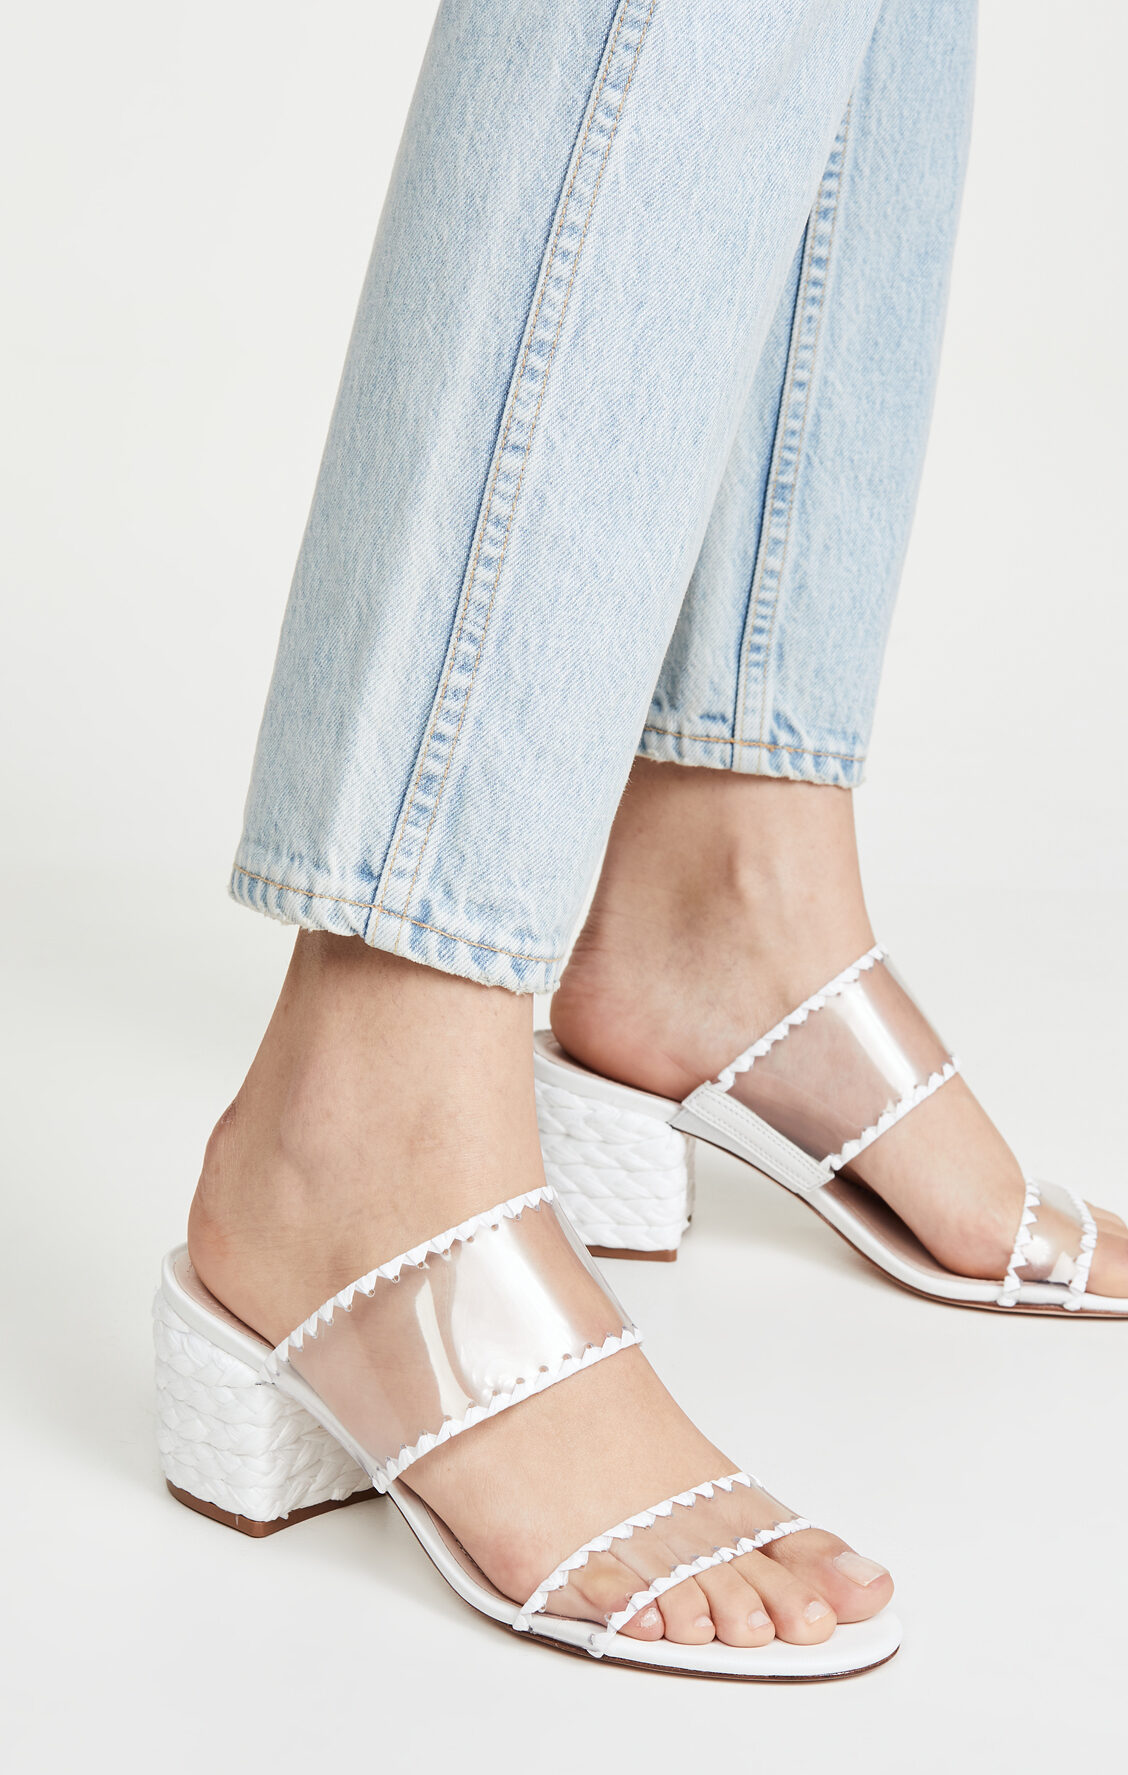 The Shopbop Spring Event + Schutz Ellarose Sandals